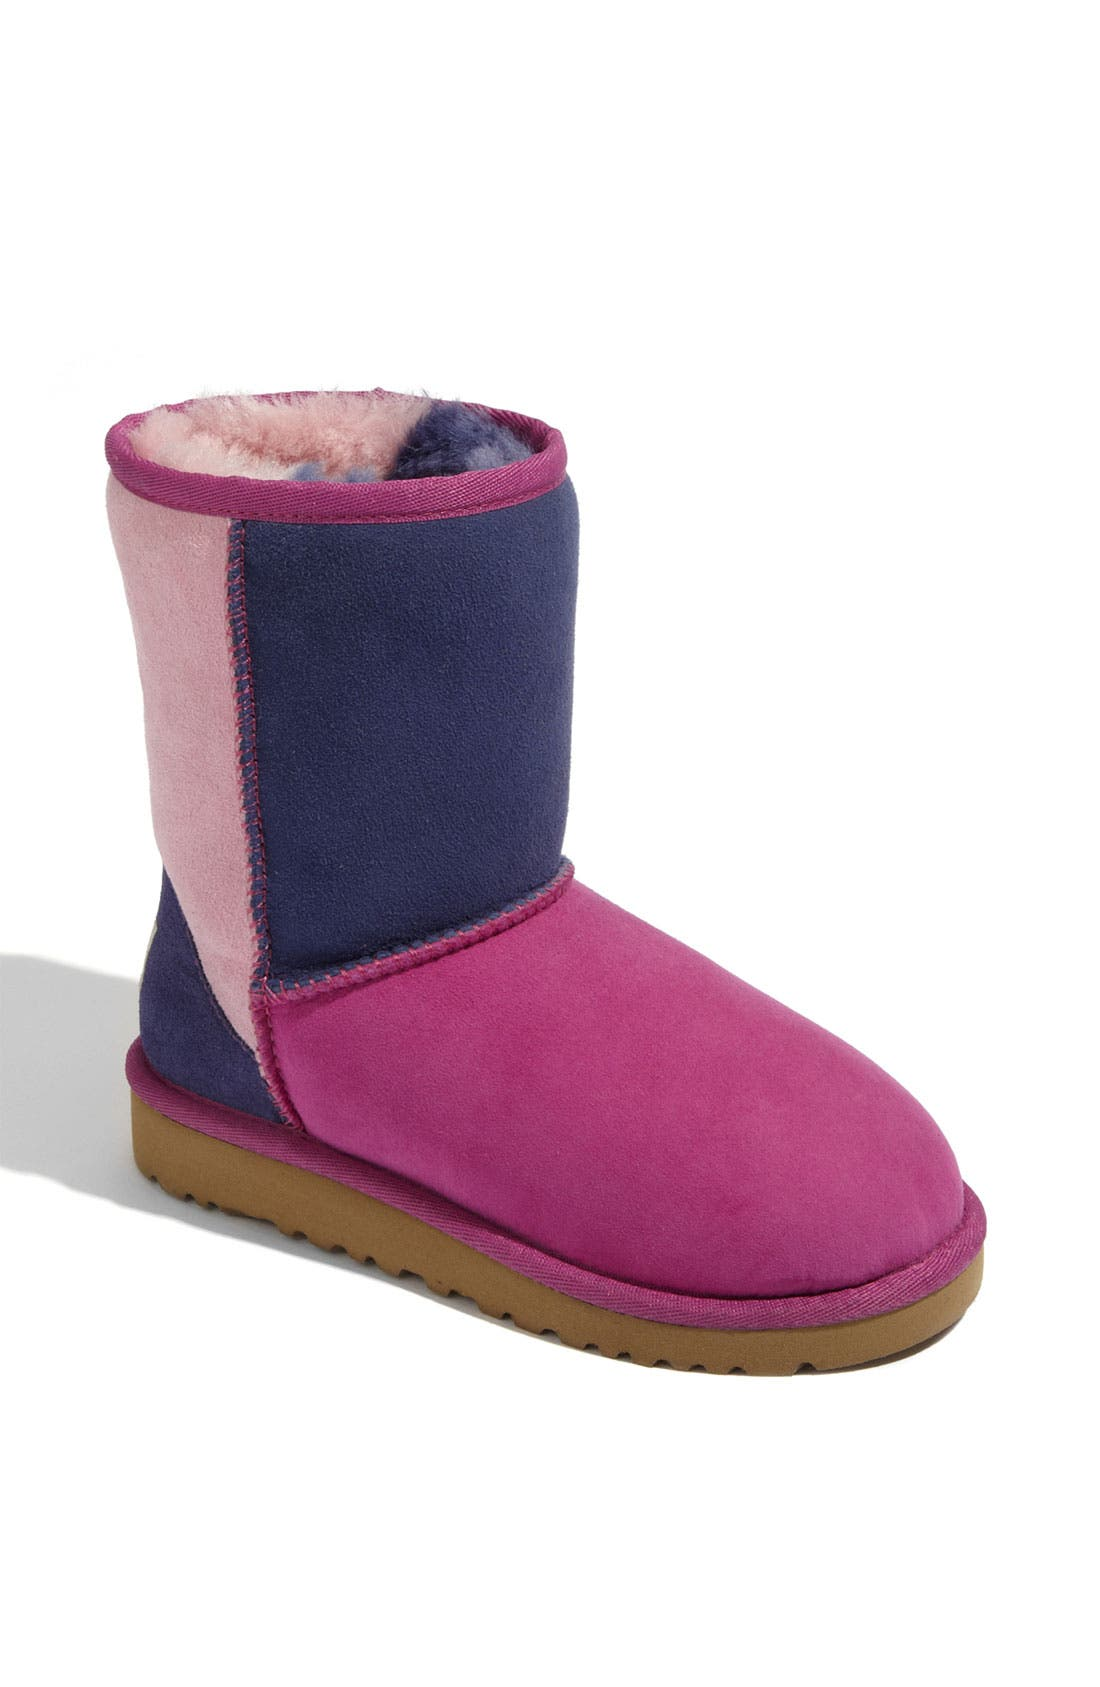 Alternate Image 1 Selected - UGG® 'Classic Short - Patchwork' Boot (Walker)